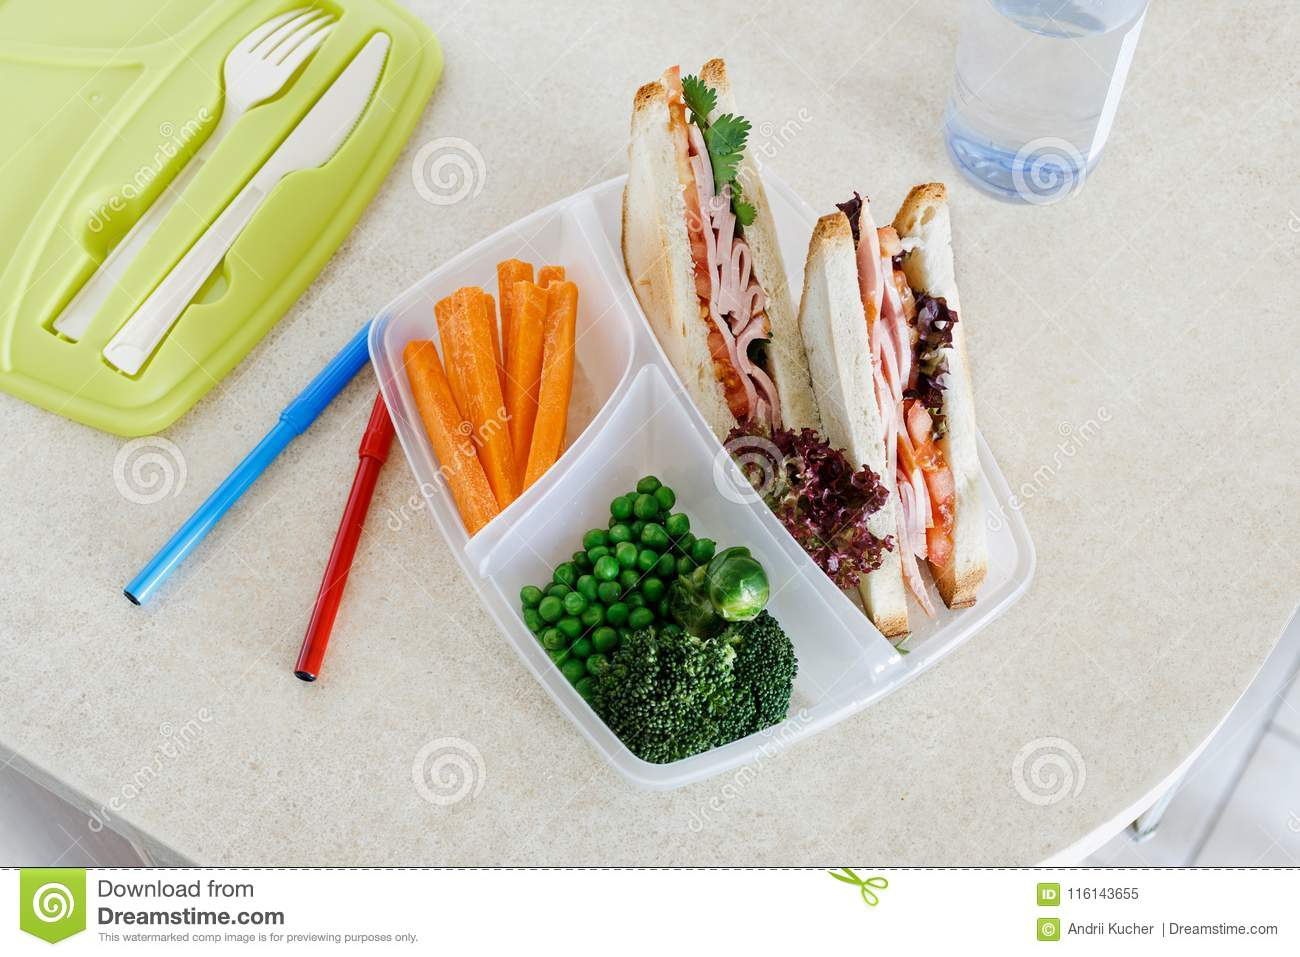 b2a40e76a1ba Healthy School Lunch Boxes Sandwich Vegetables Healthy Eating Stock ...